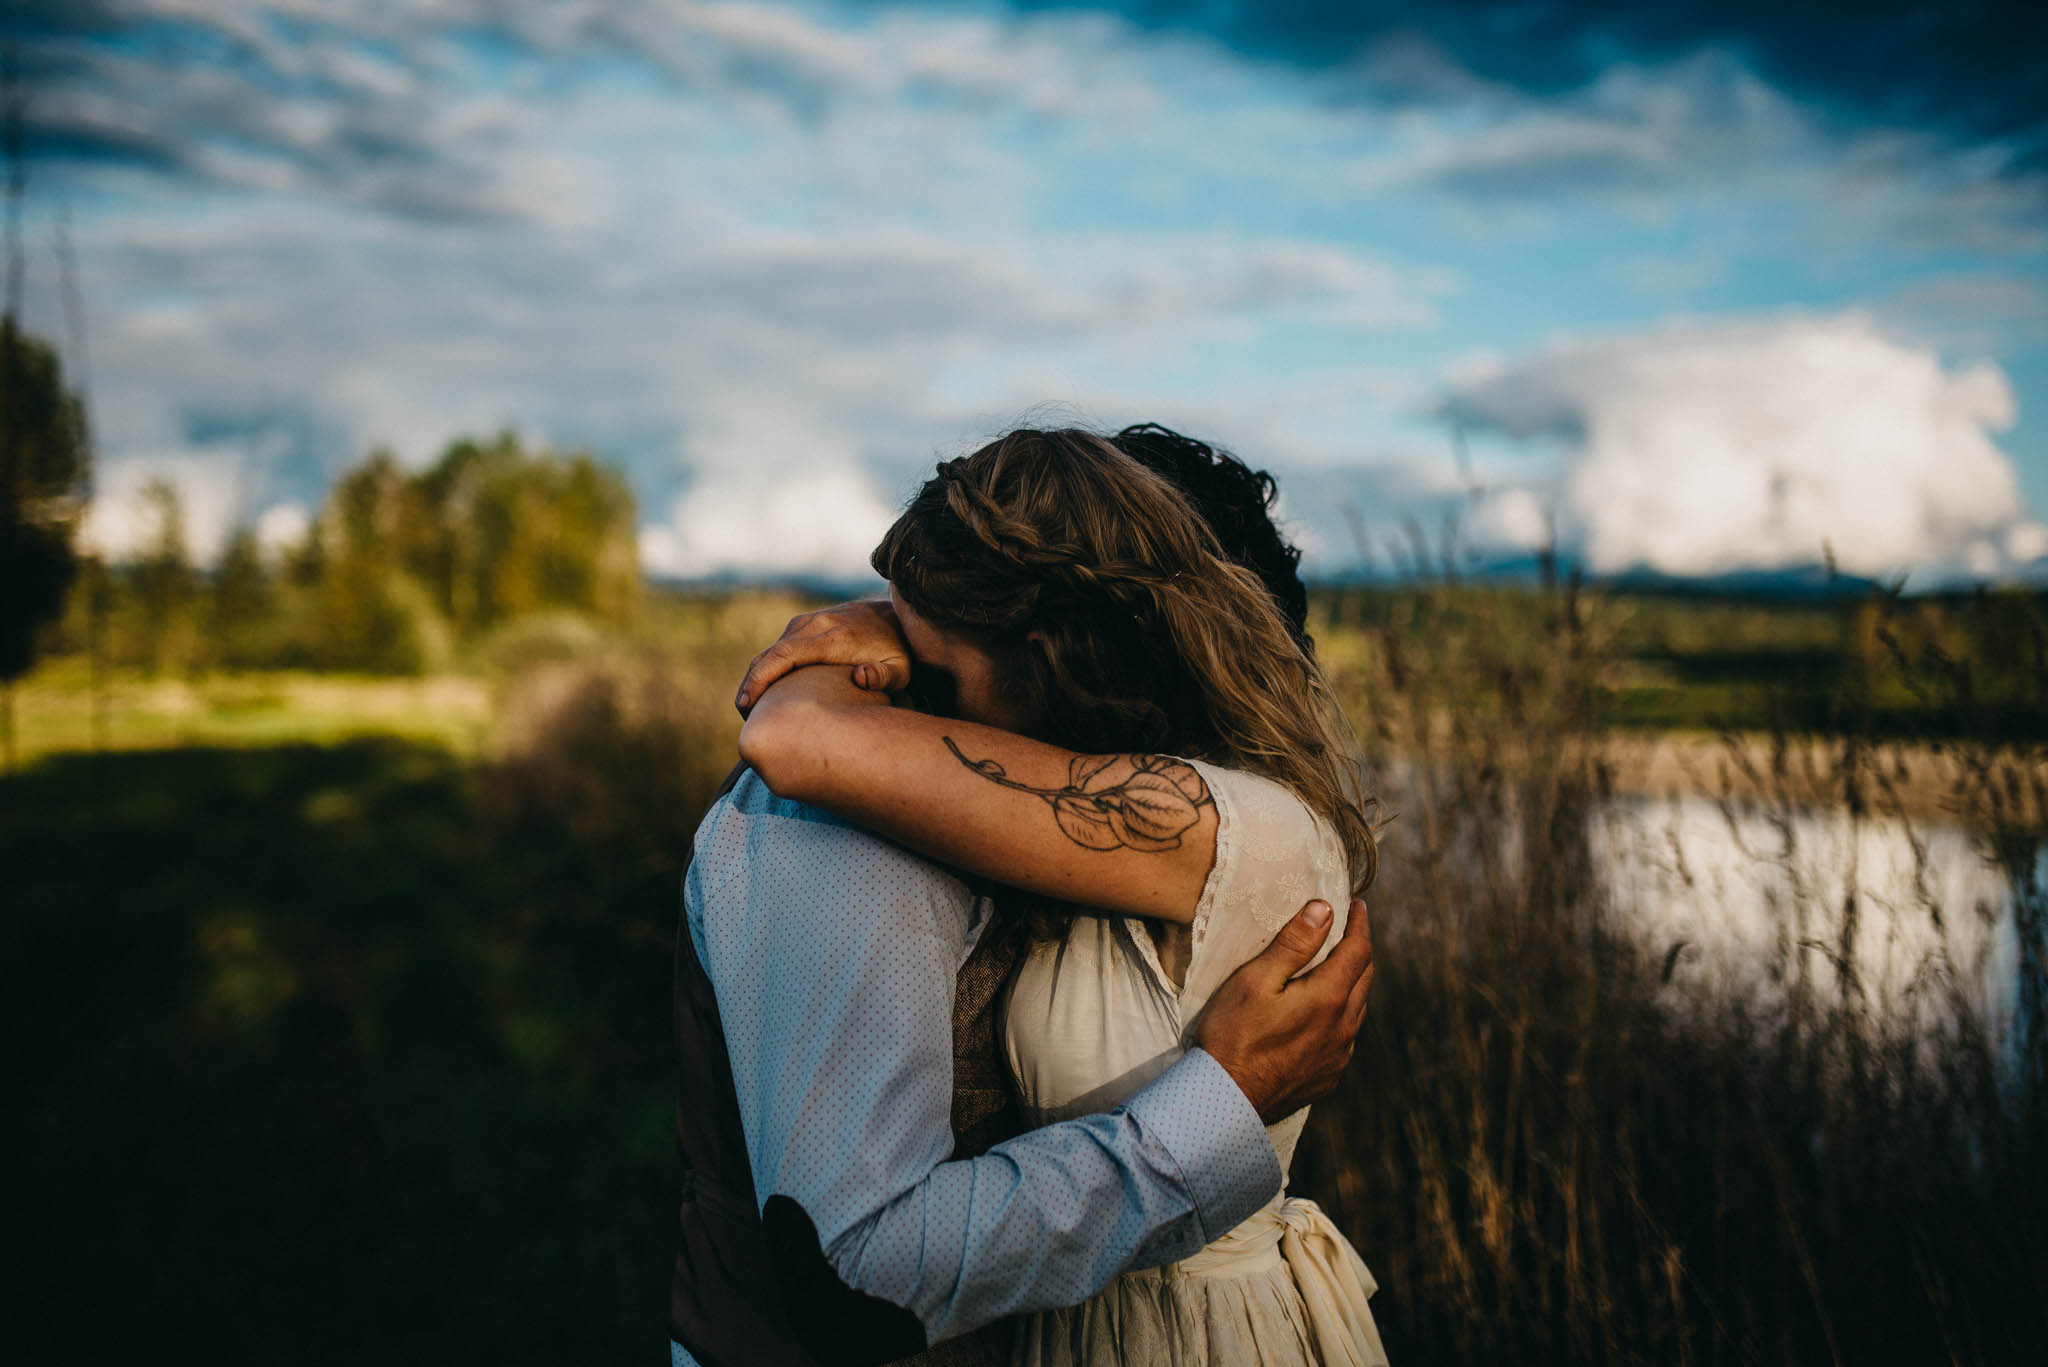 bride and groom embracing during sunset at farm wedding